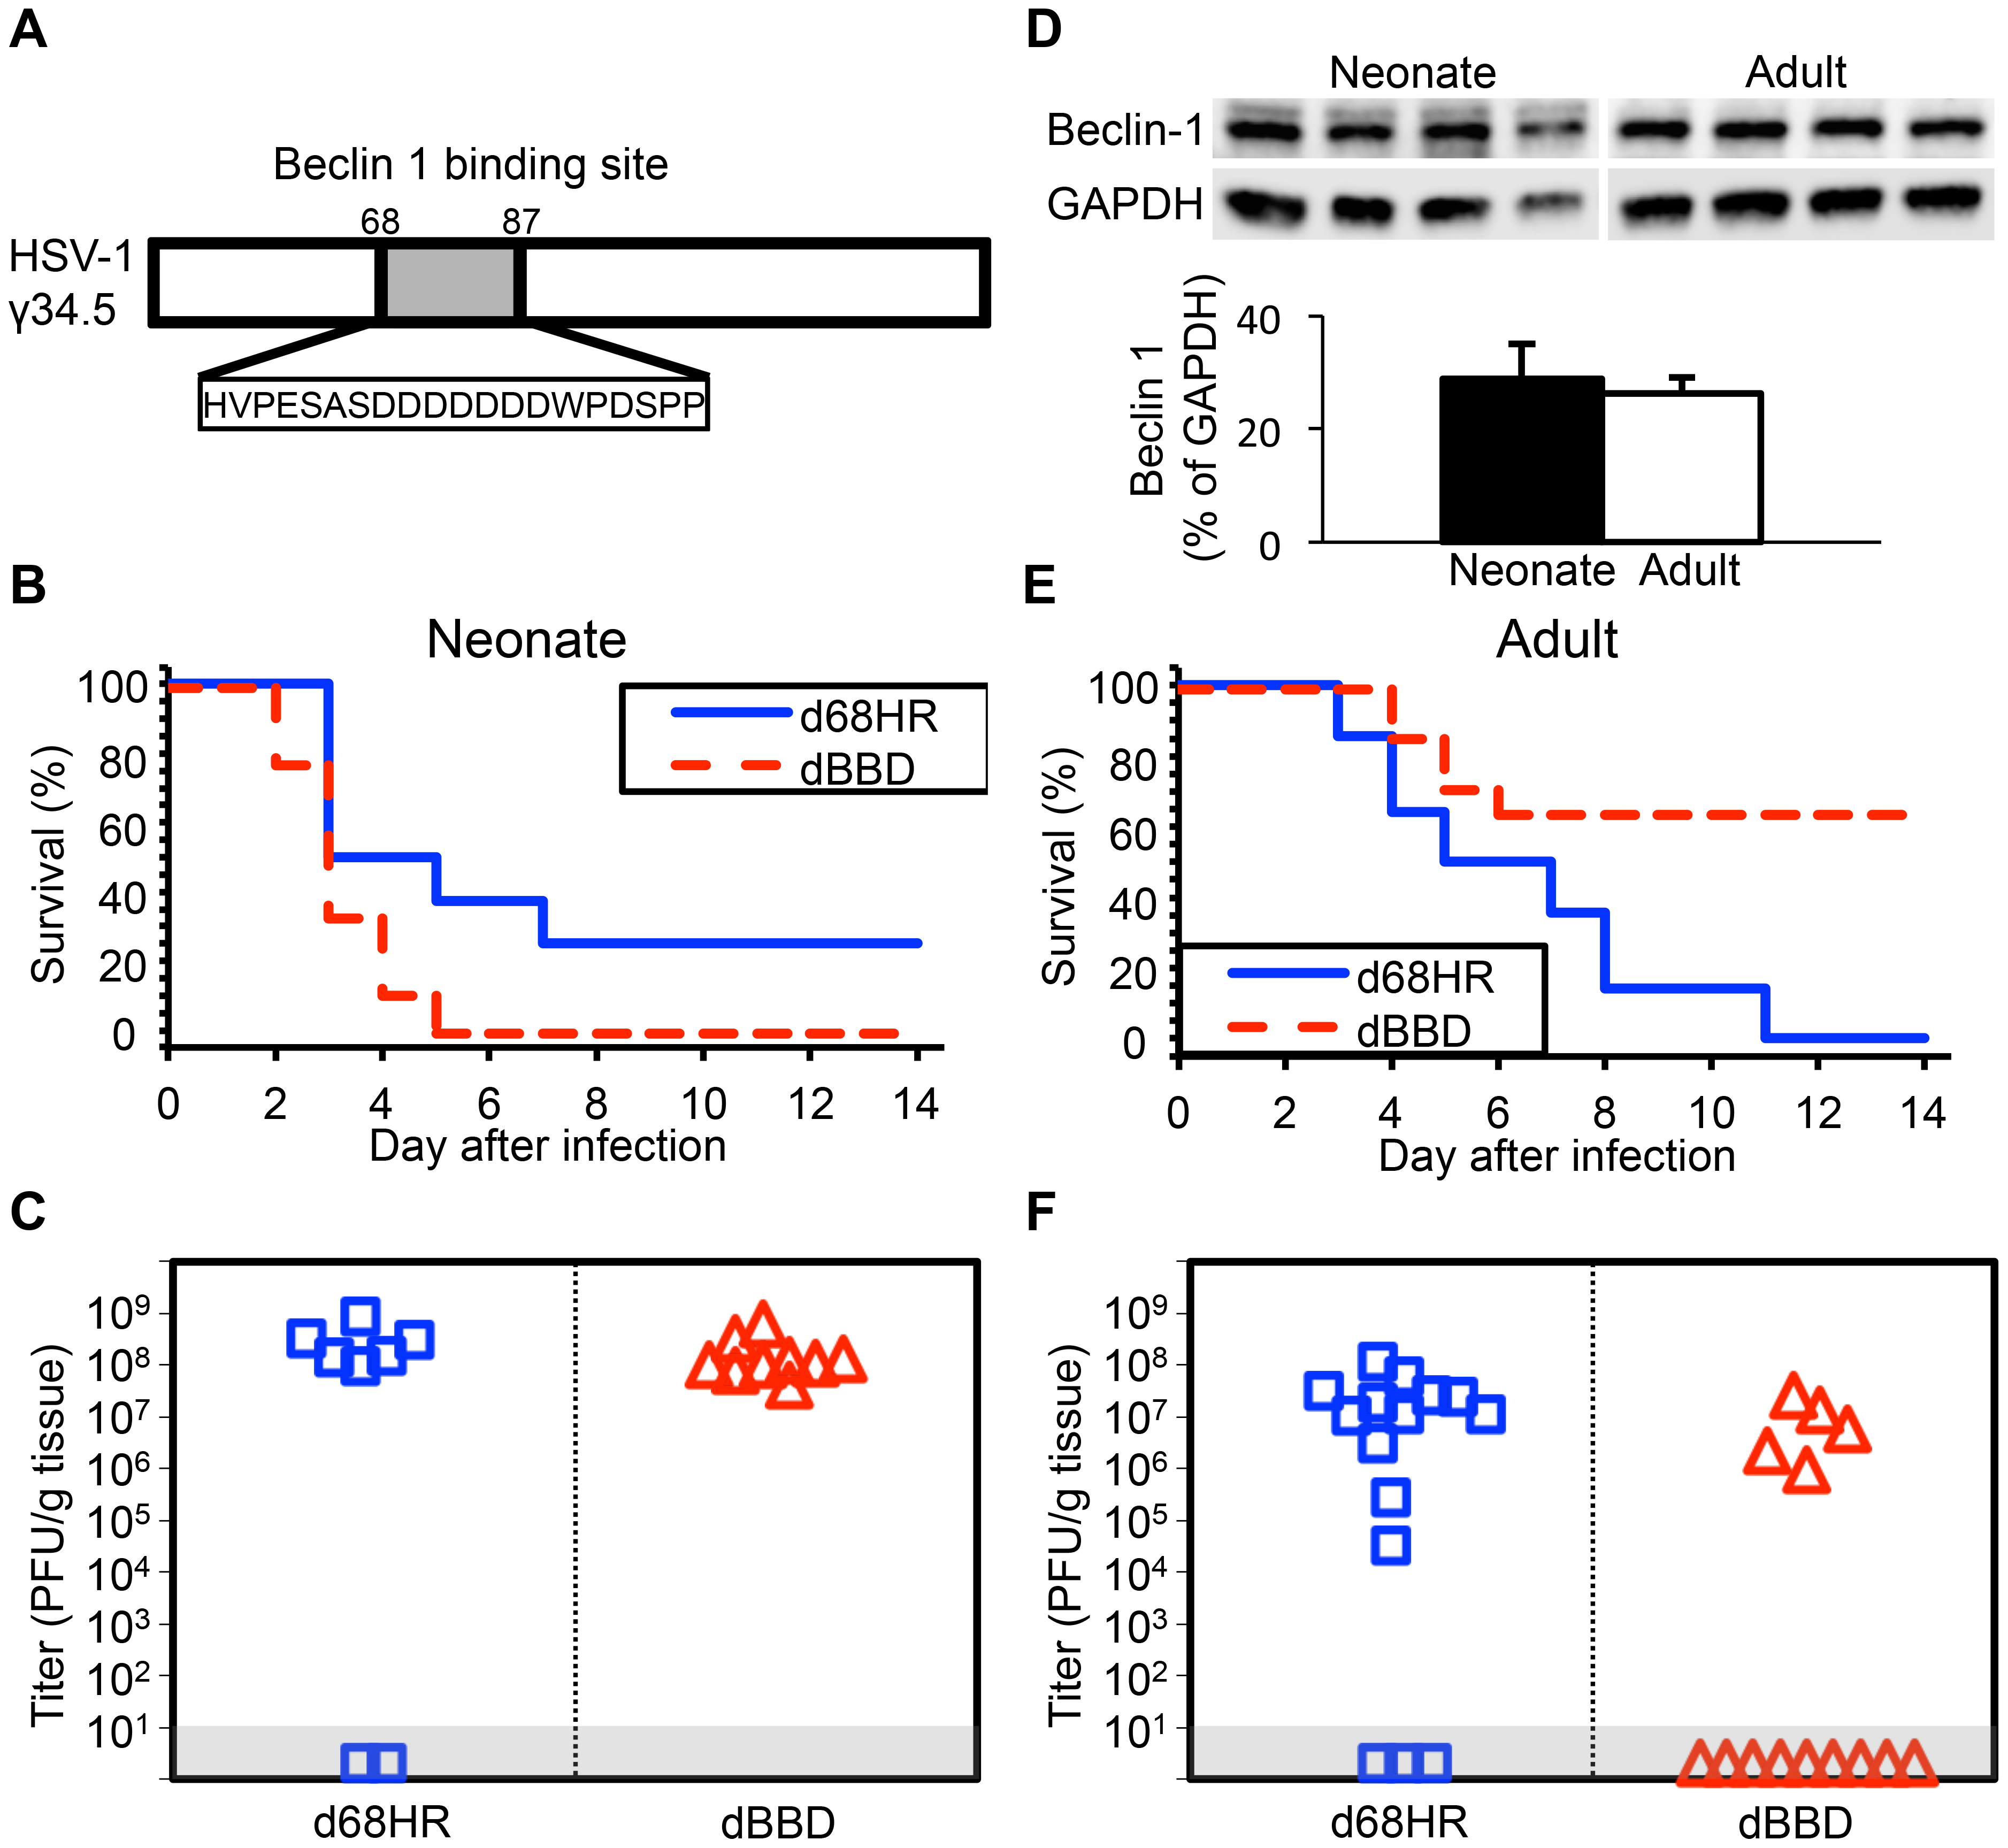 Inhibition of autophagy through beclin 1 binding is dispensable for HSV-1 pathogenesis in the neonatal mouse brain.